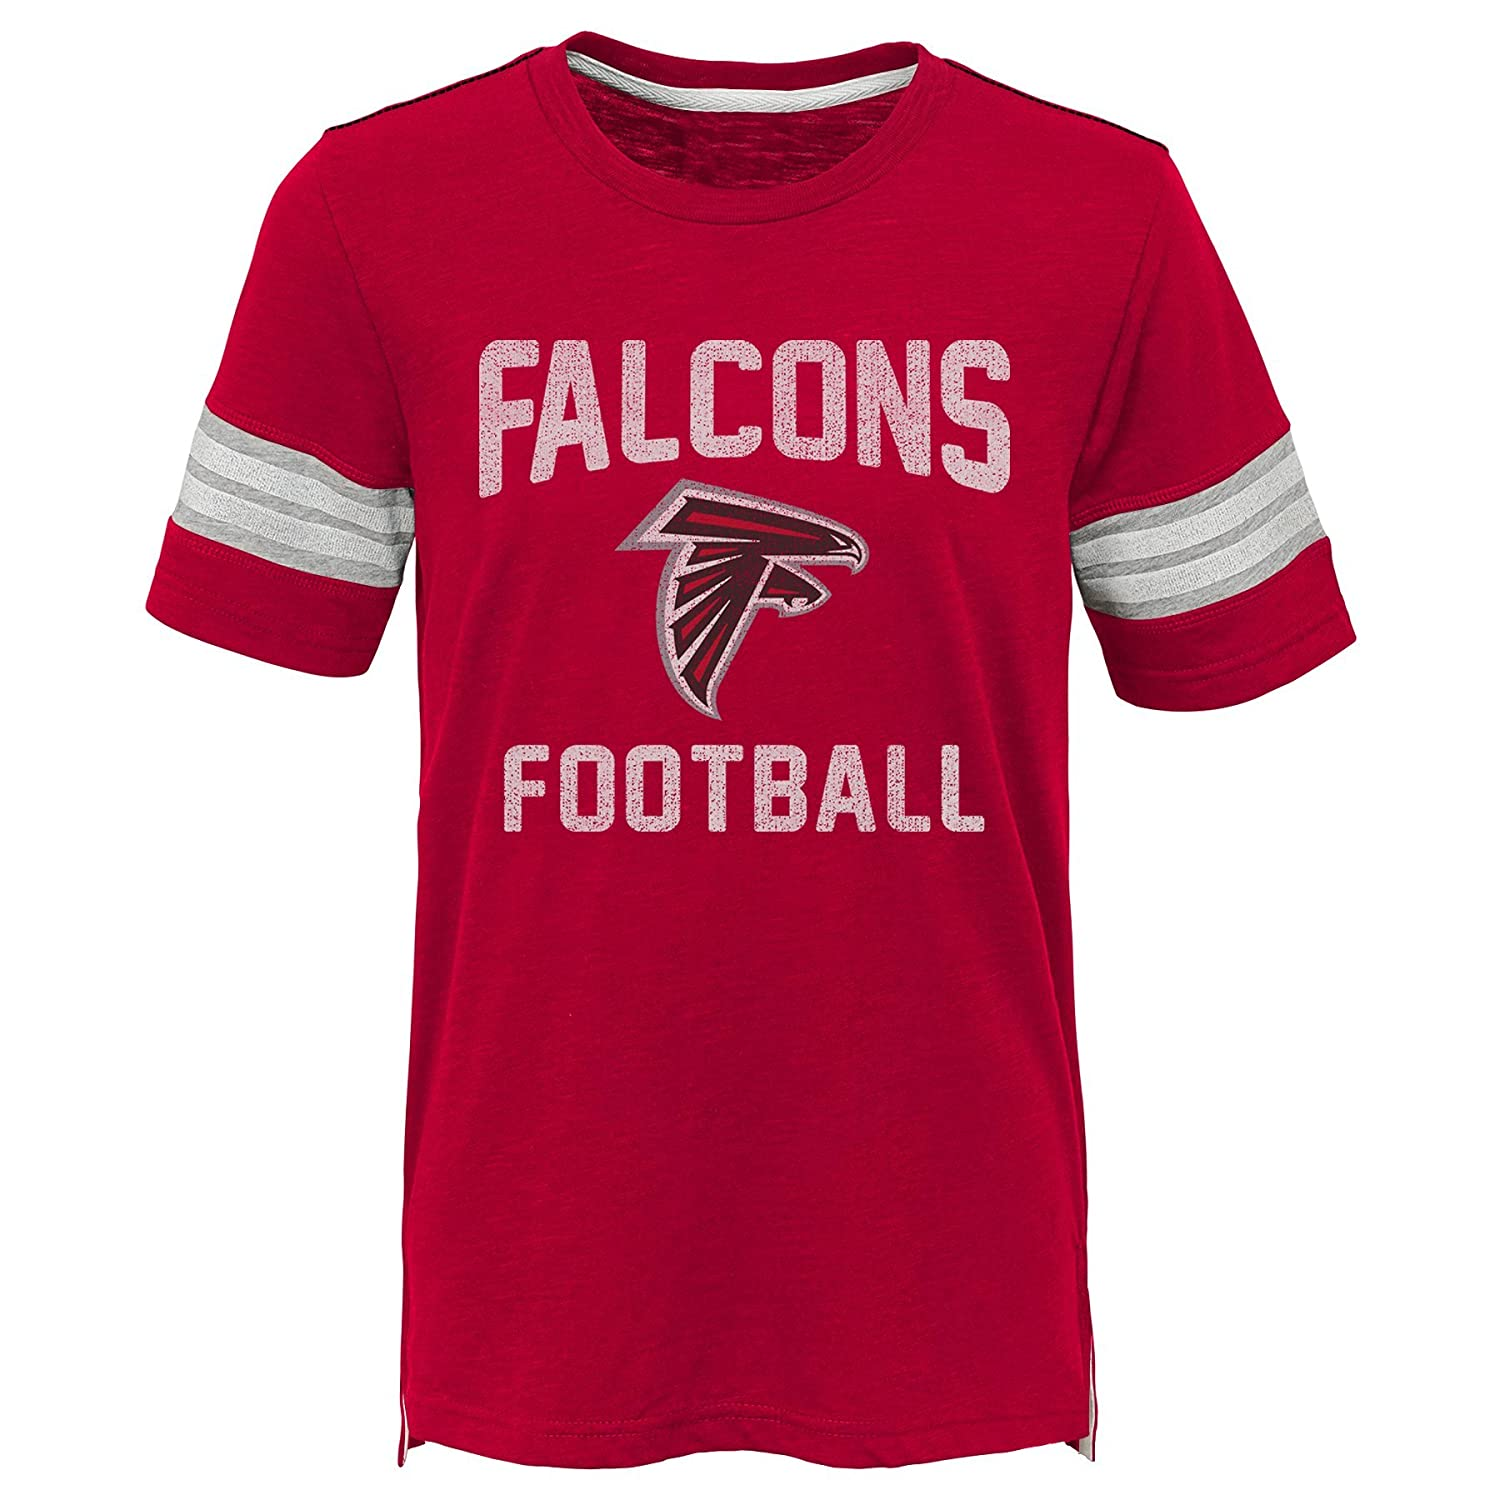 4 Outerstuff NFL NFL Atlanta Falcons Kids Prestige Short Sleeve Crew Neck Tee Crimson Kids Small